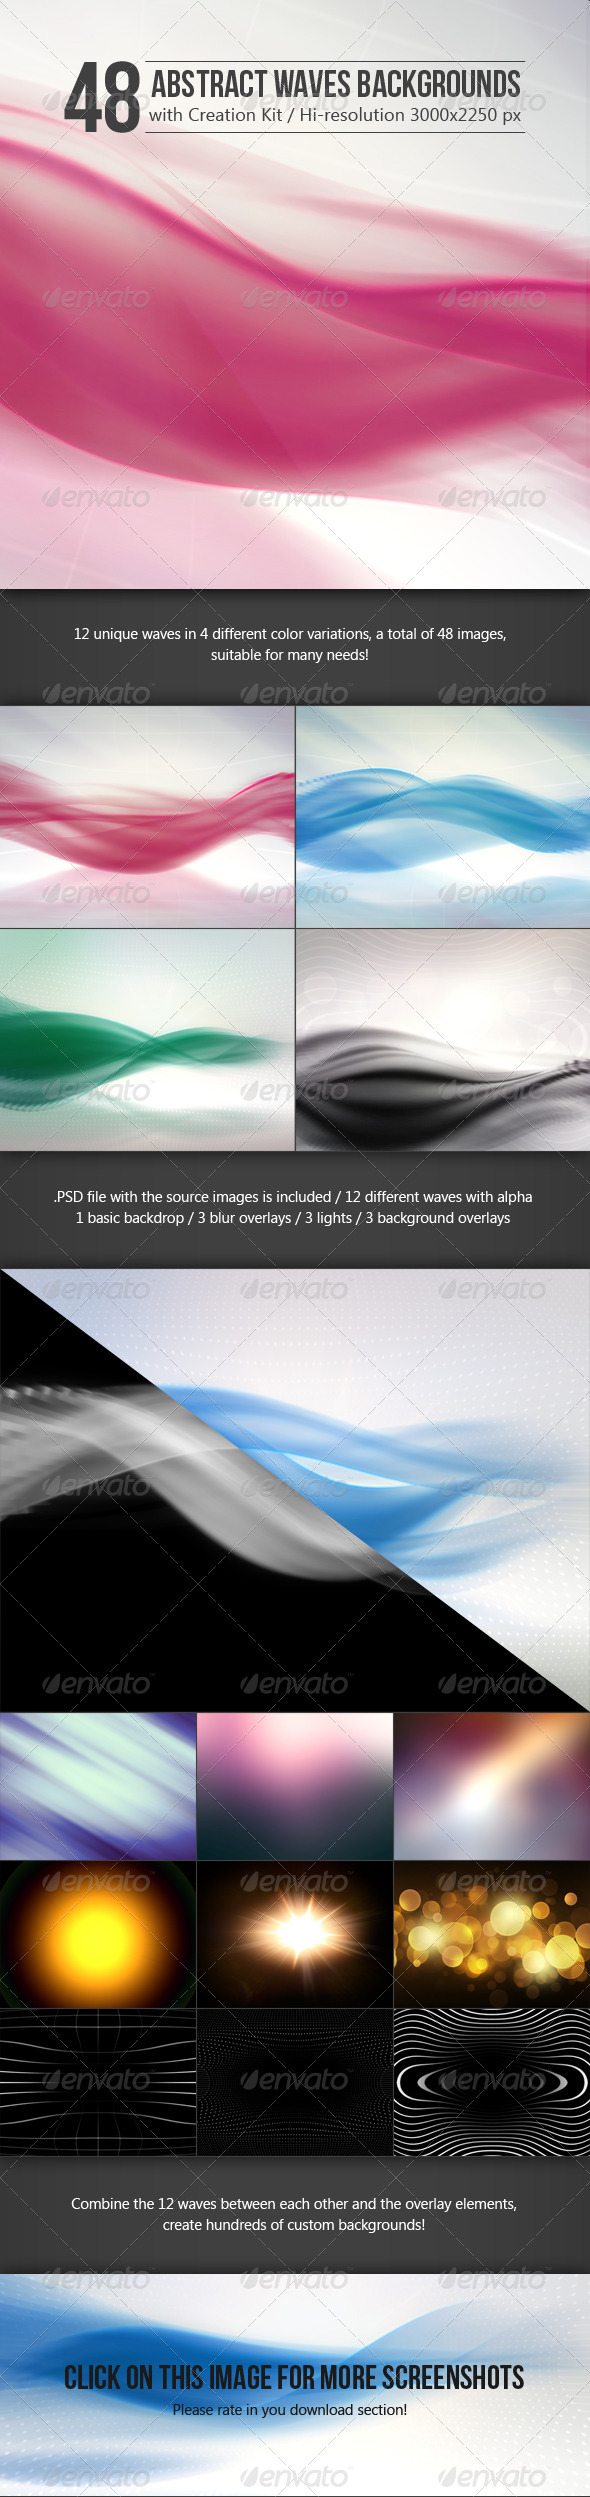 GraphicRiver 48 Abstract Waves Backgrounds with Creation Kit 7239925